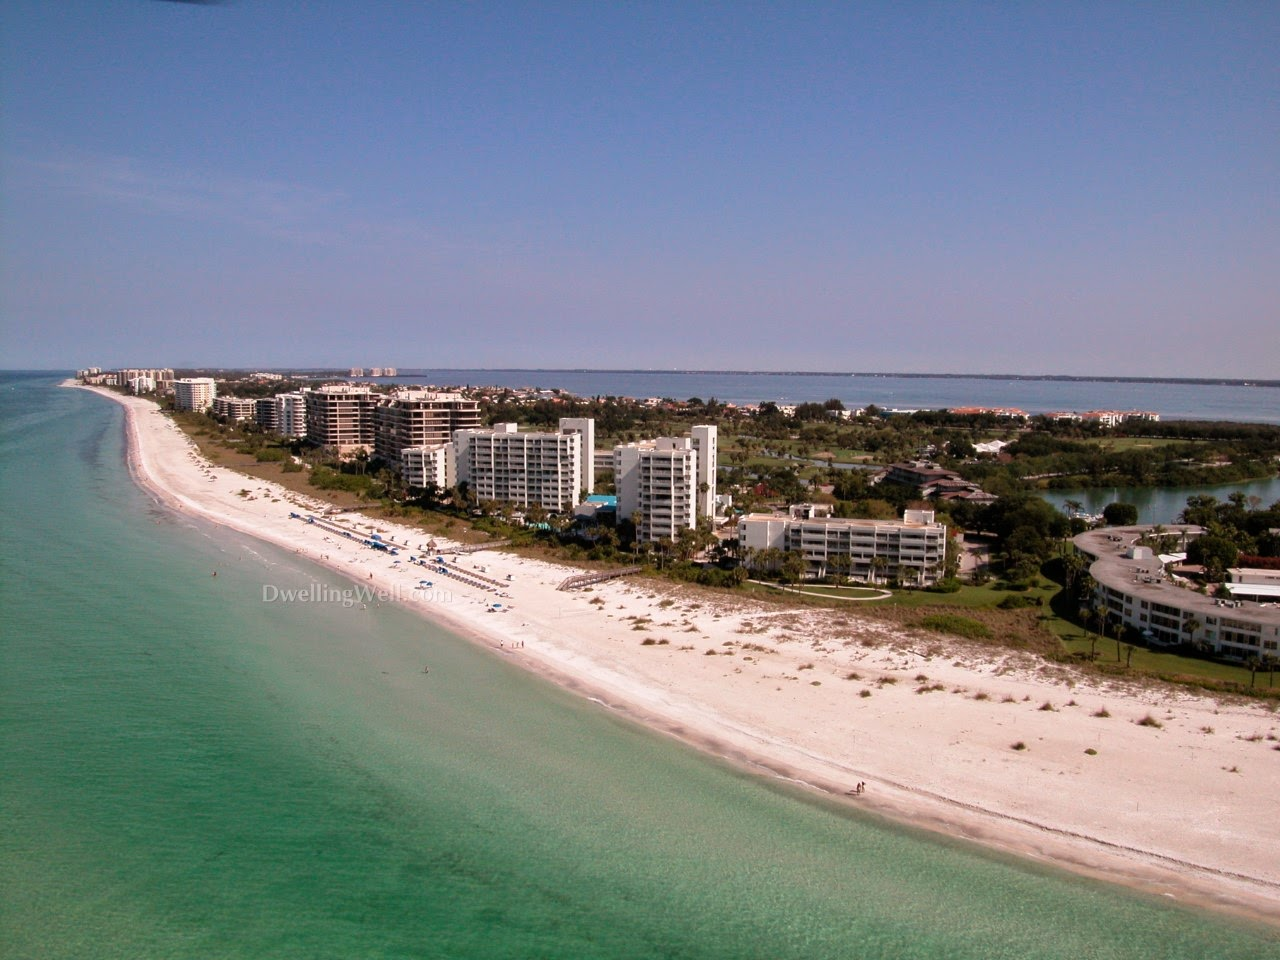 Coquille furthermore U ard Trend In Sarasota Real Estate likewise Florida Luxury Homes For Sale Luxury Real Estate Fl together with Area Neighborhoods likewise Sarasota Zip Code Map. on sarasota florida real estate condos